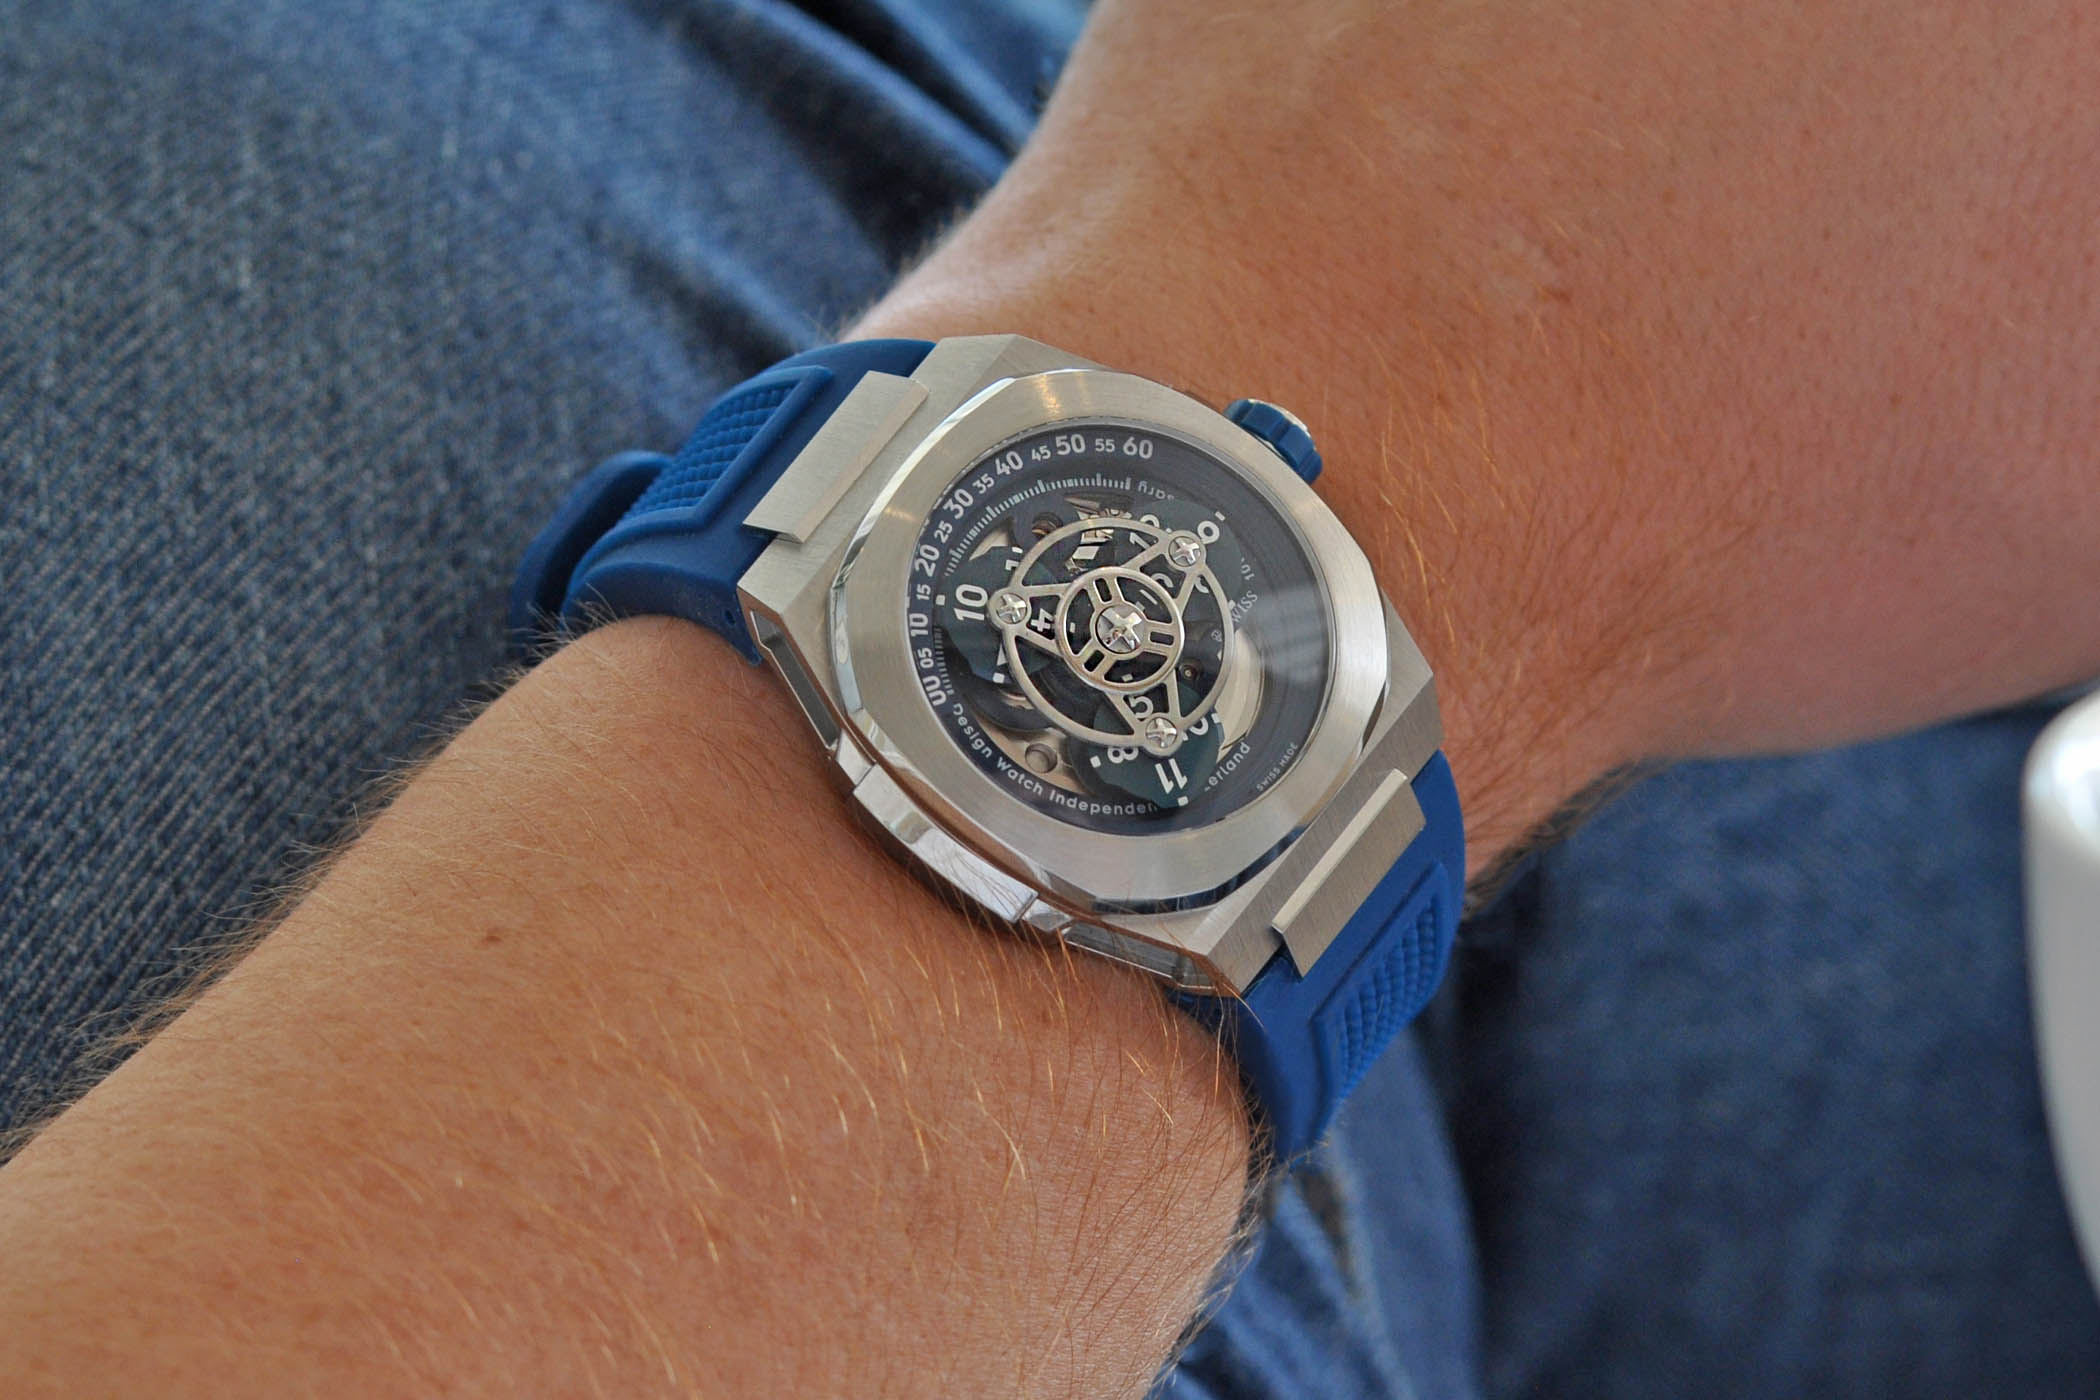 DWISS M3W Wandering Hour 10th Anniversary Limited Edition